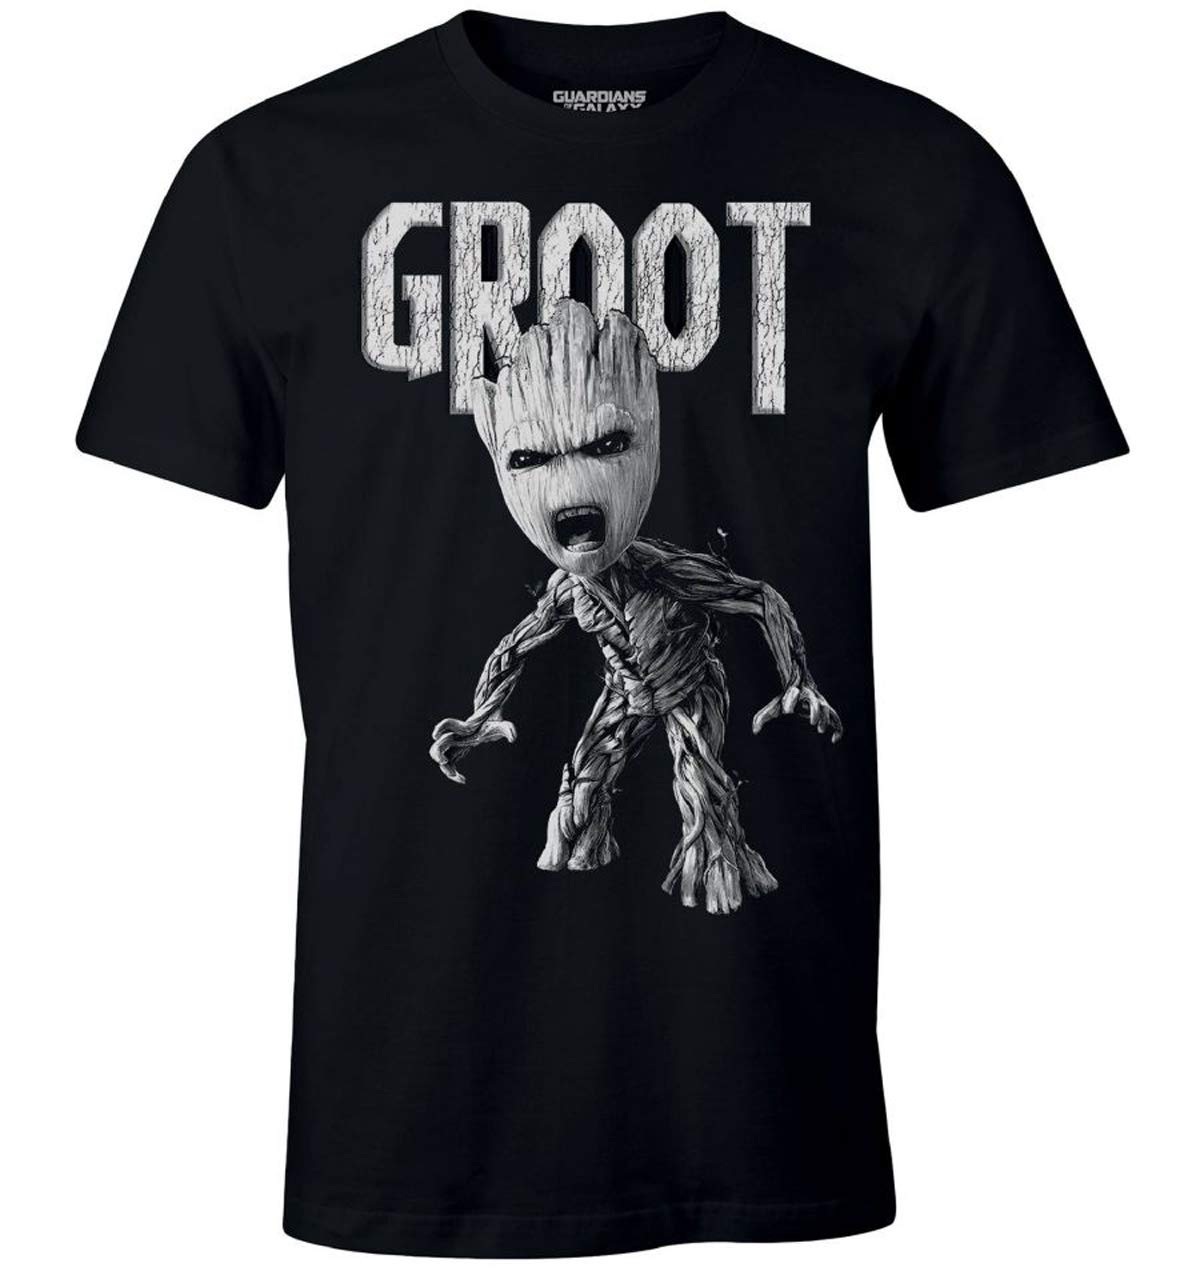 Guardians Of The Galaxy I Am Groot Avengers Bw Tee Tshirt S Unisex